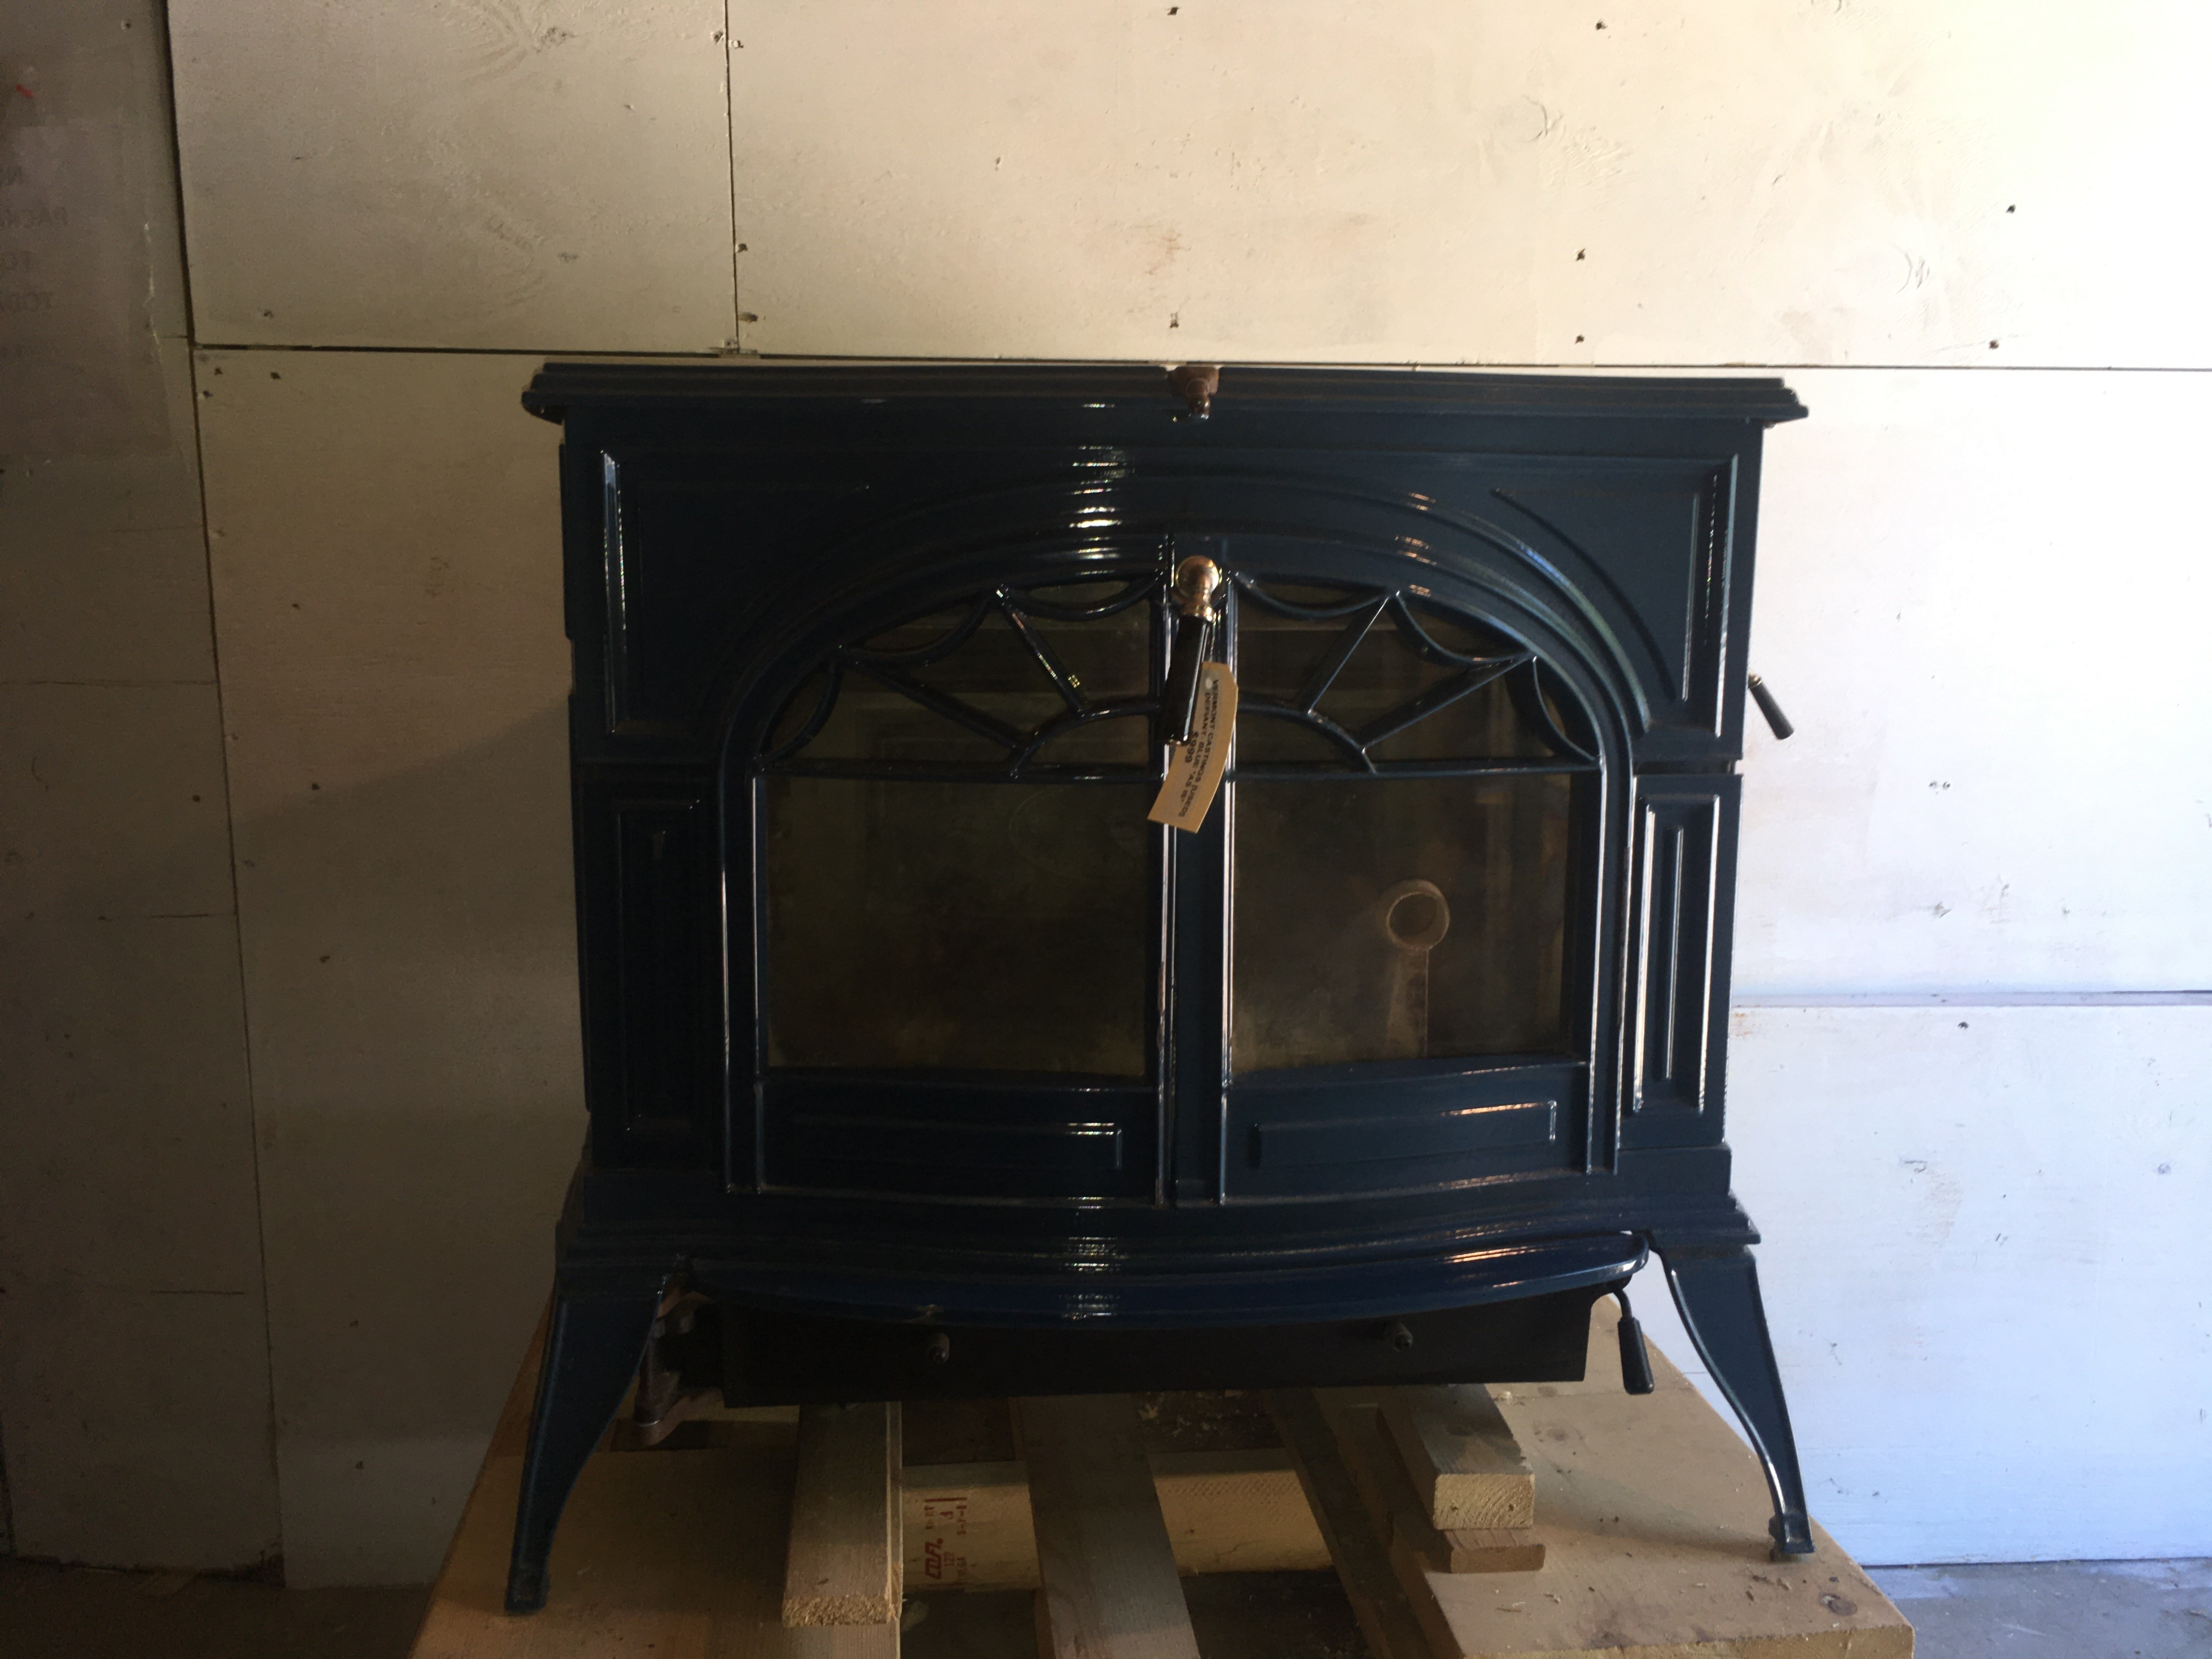 Vermont Castings Defiant 1610 Wood Stove - USED